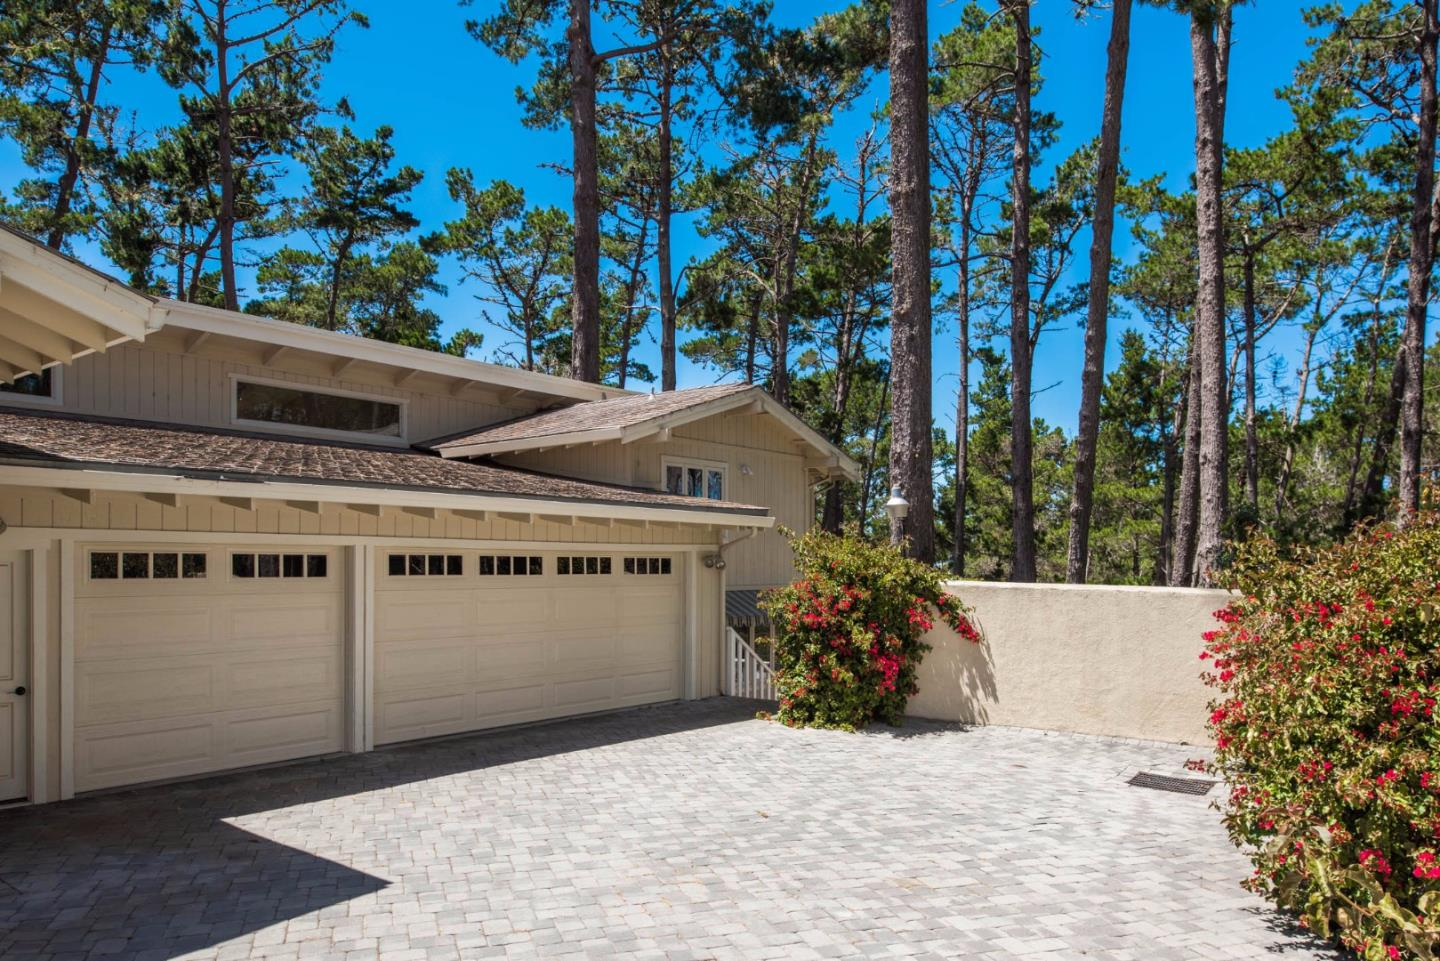 Additional photo for property listing at 1260 Cantera Court  Pebble Beach, Kalifornien 93953 Vereinigte Staaten